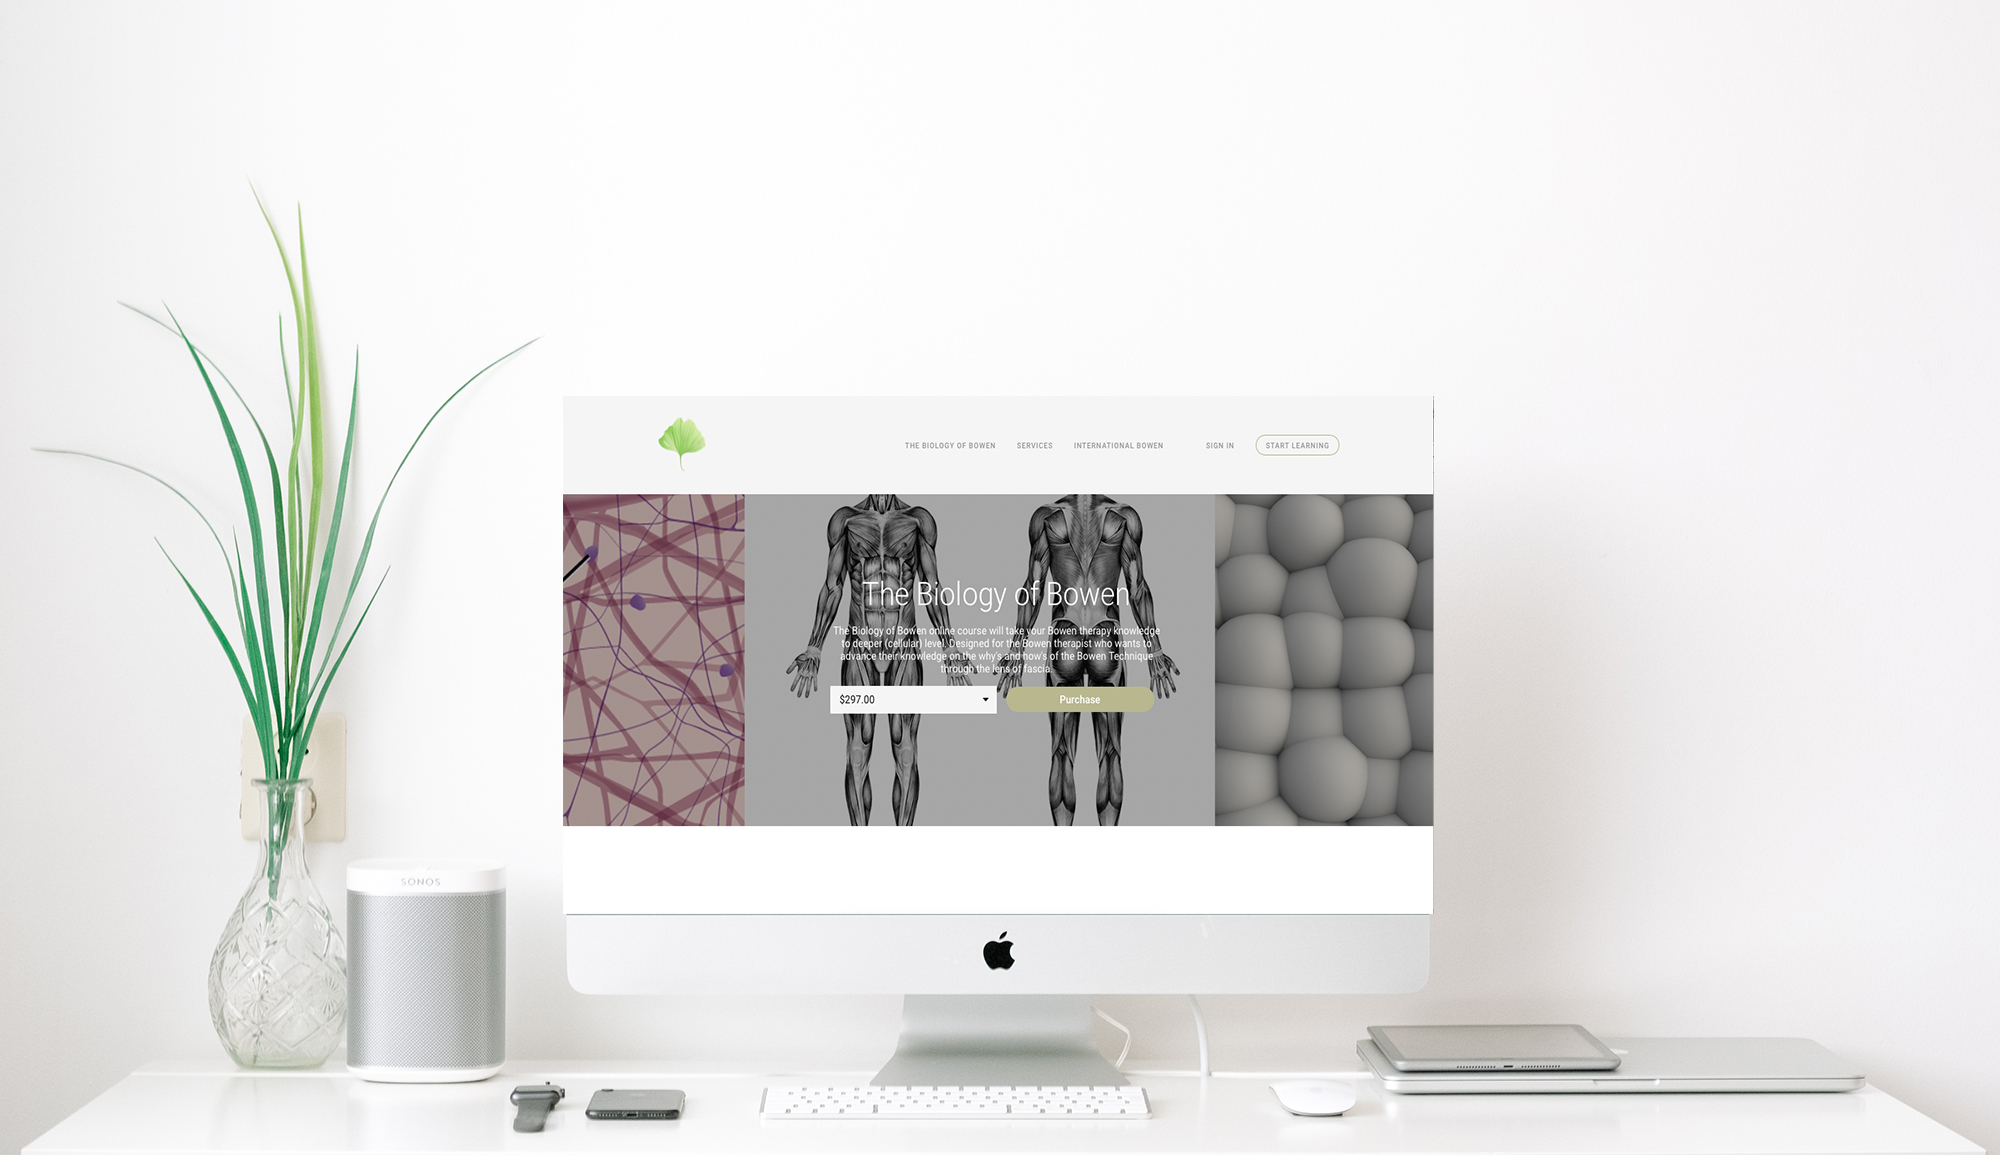 biology of bowen online course for bowen therapists